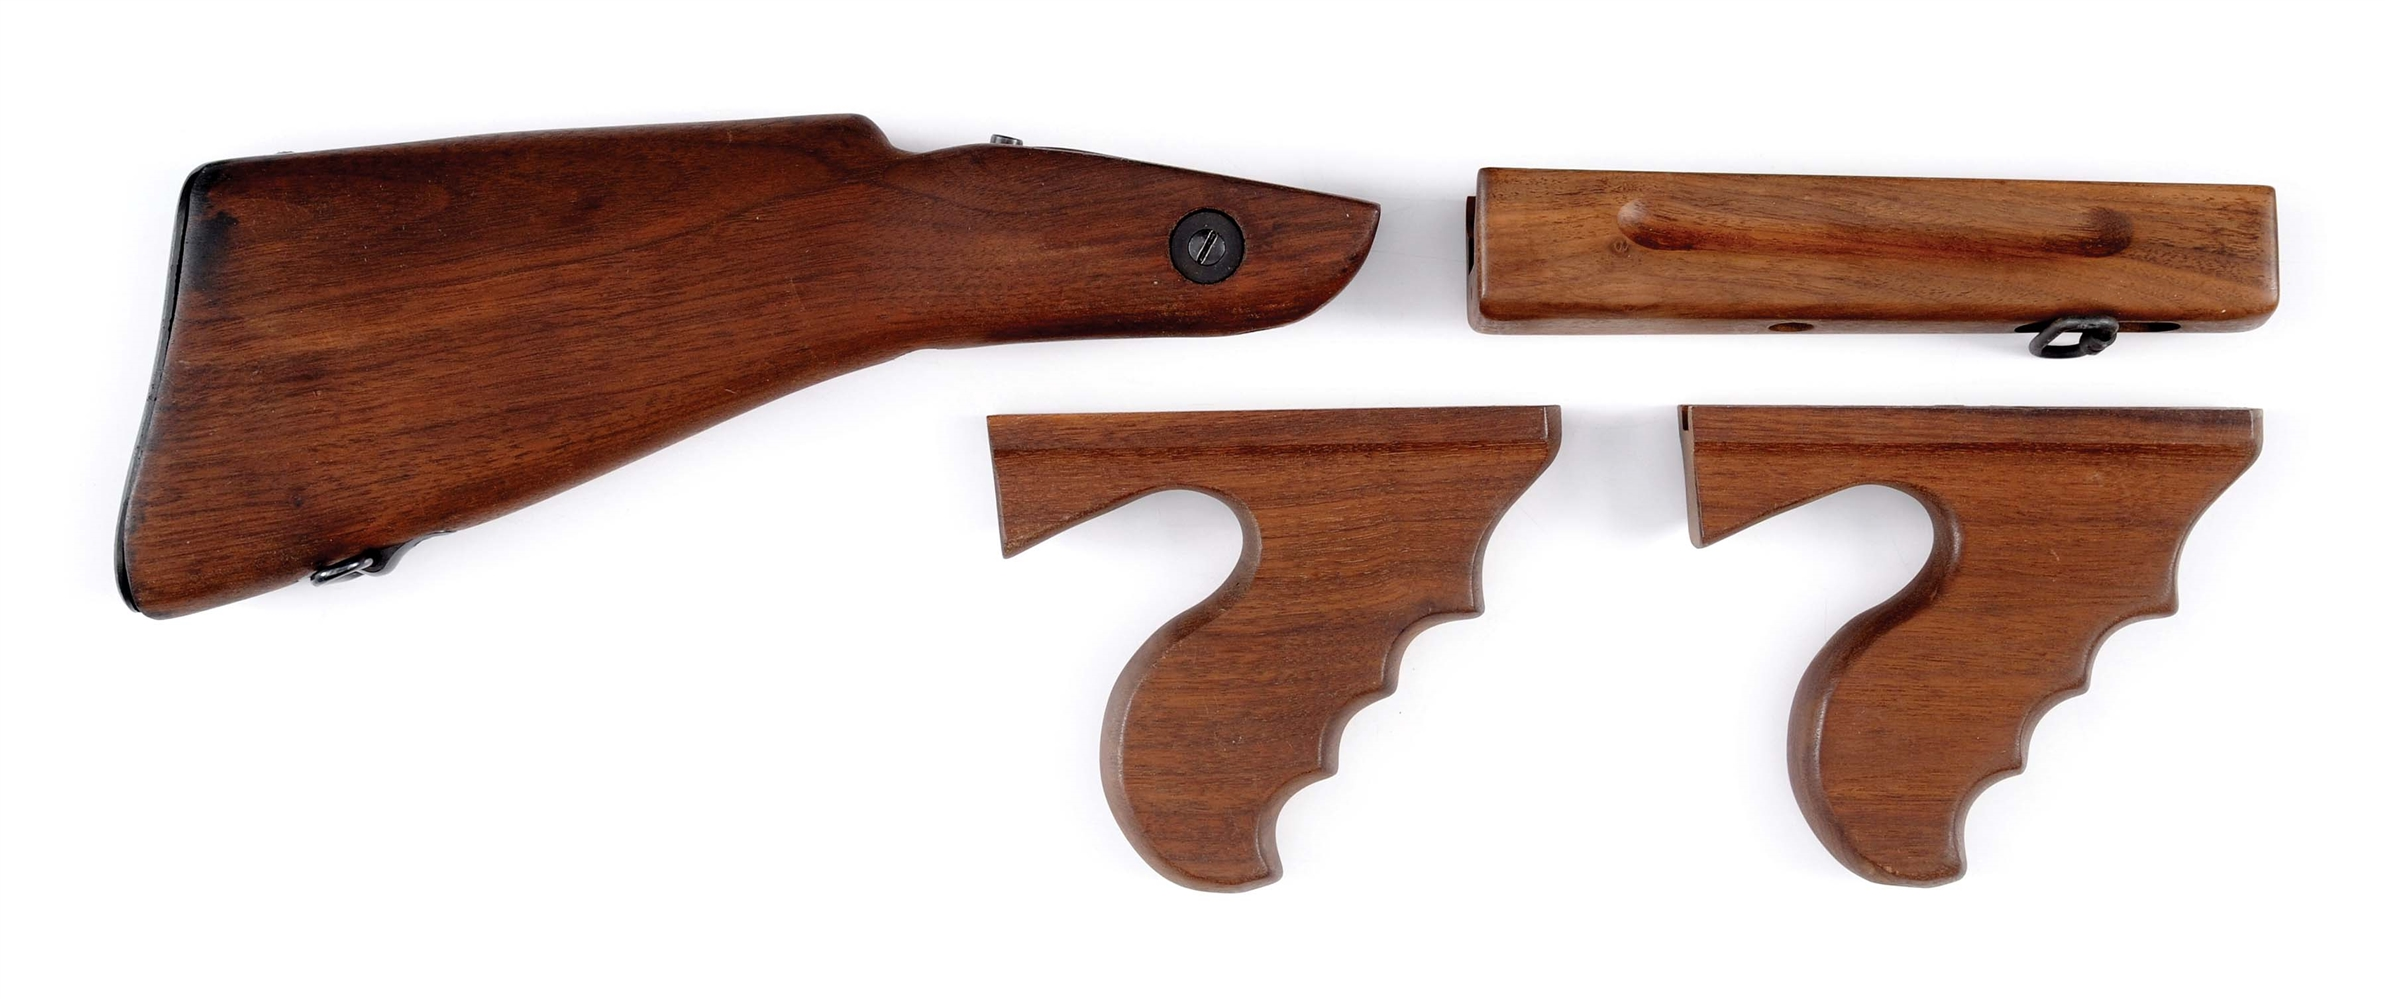 Utterly Fantastic Grouping of Rare & Desirable Vintage Thompson Machine Gun Parts & Accessories.